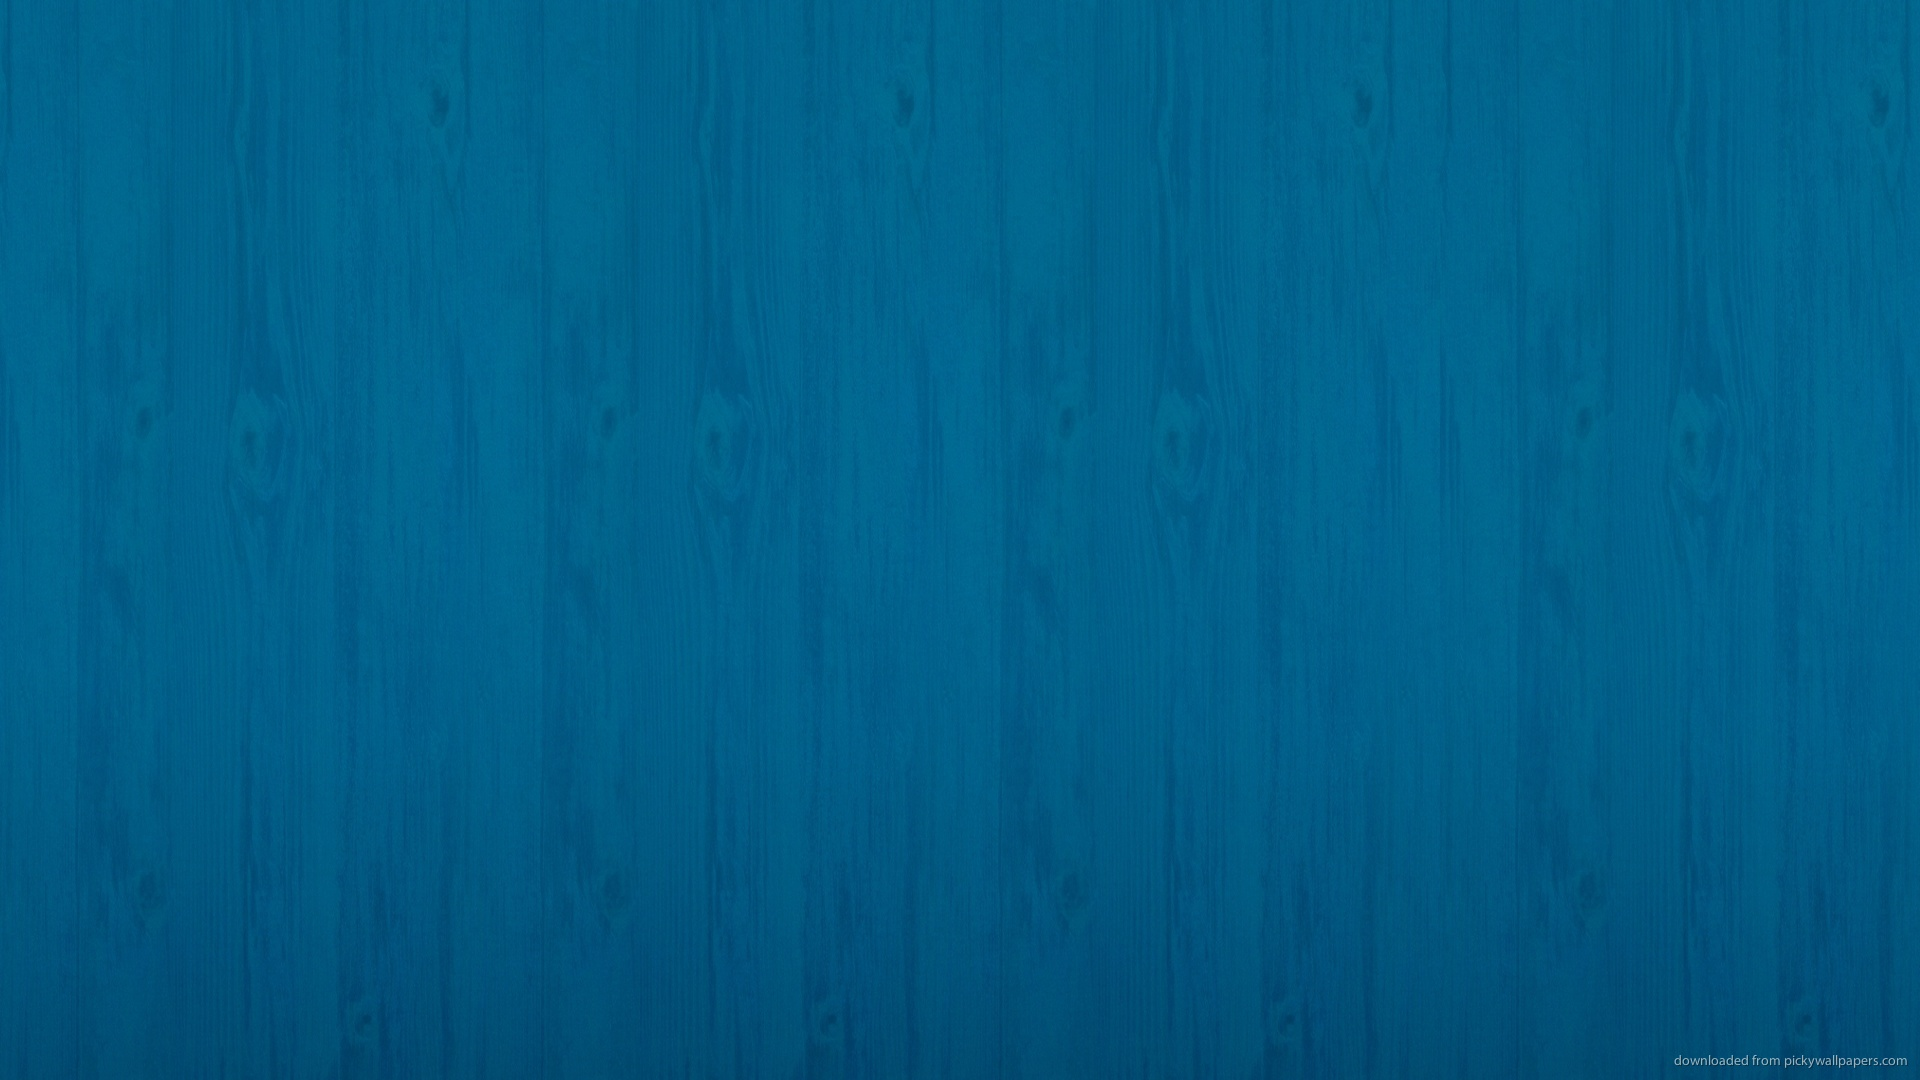 Blue Hd 1920x1080 Wallpaper Wallpapersafari